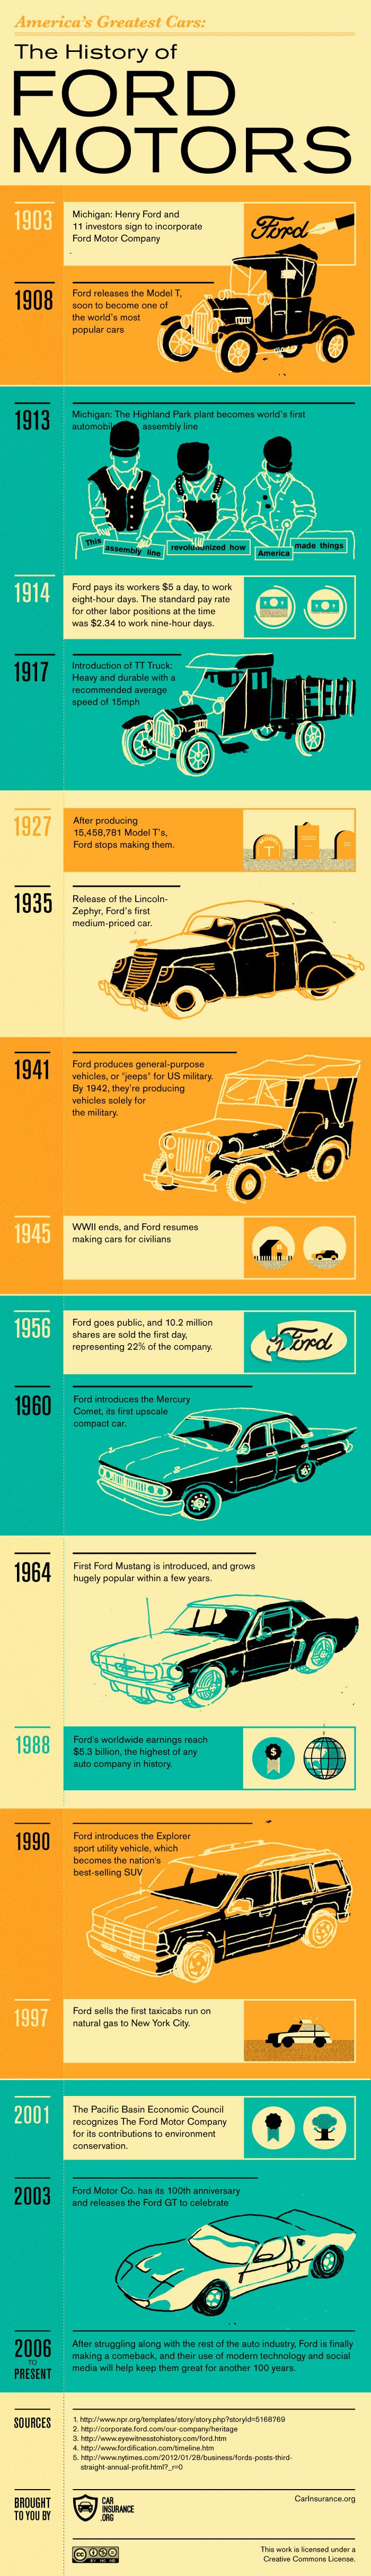 the history of the ford motor company Read ford mustang history reviews & specs, view mustang history pictures & videos, and get mustang history prices & buying advice for both new & used models here.